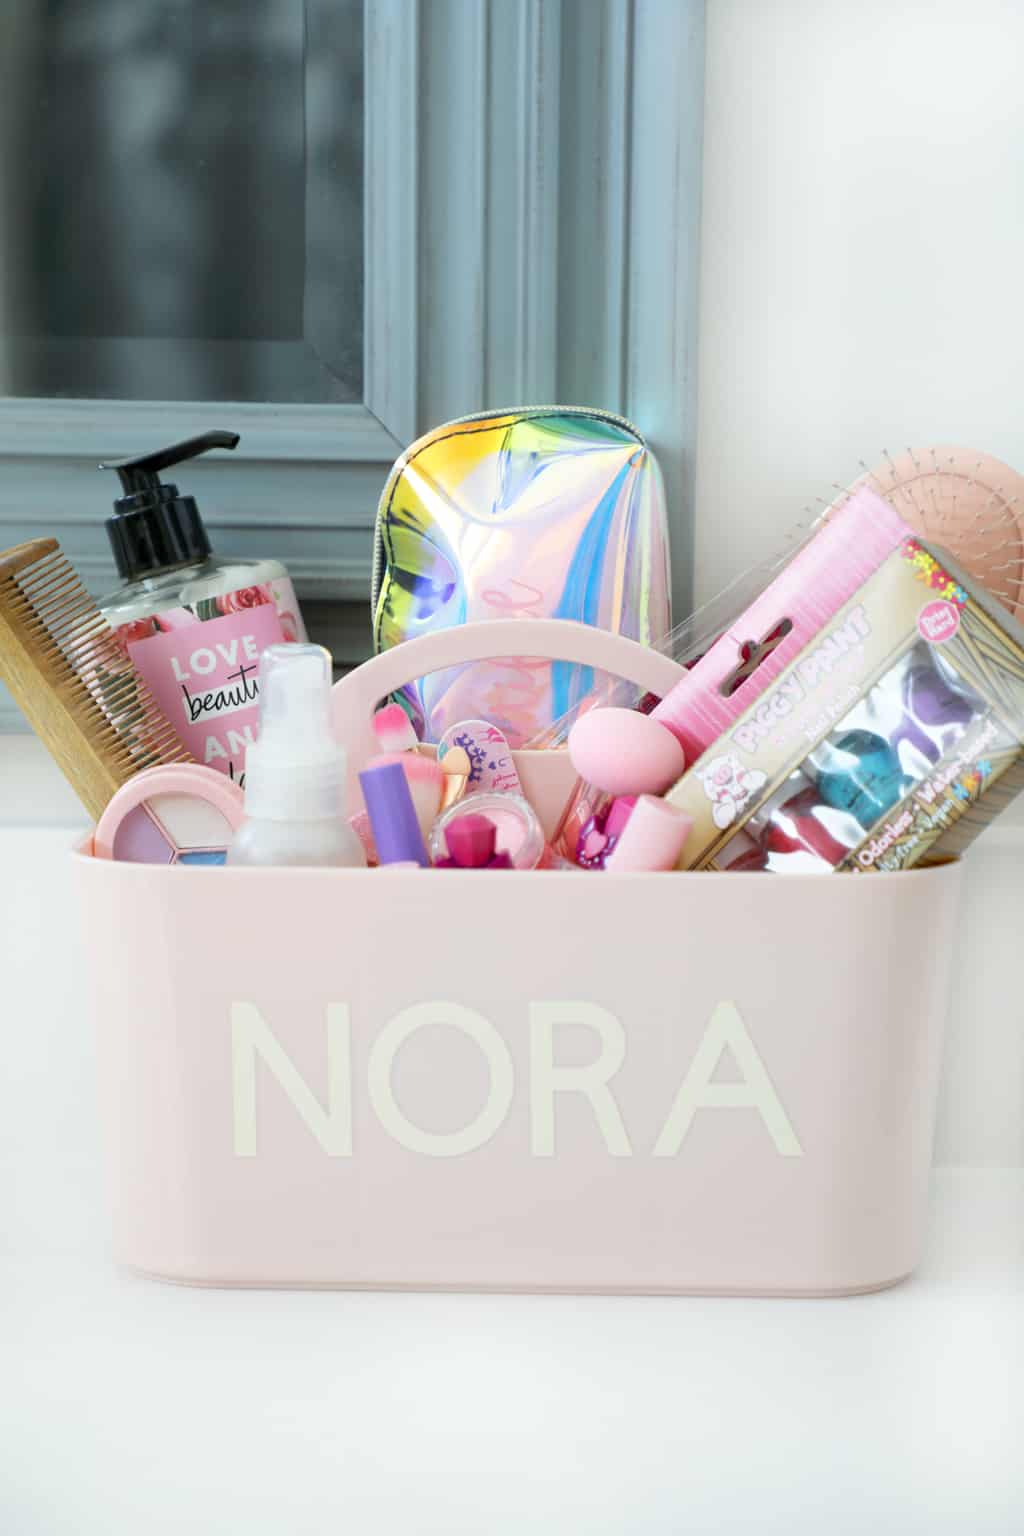 personalized pink make up caddy on bathroom counter